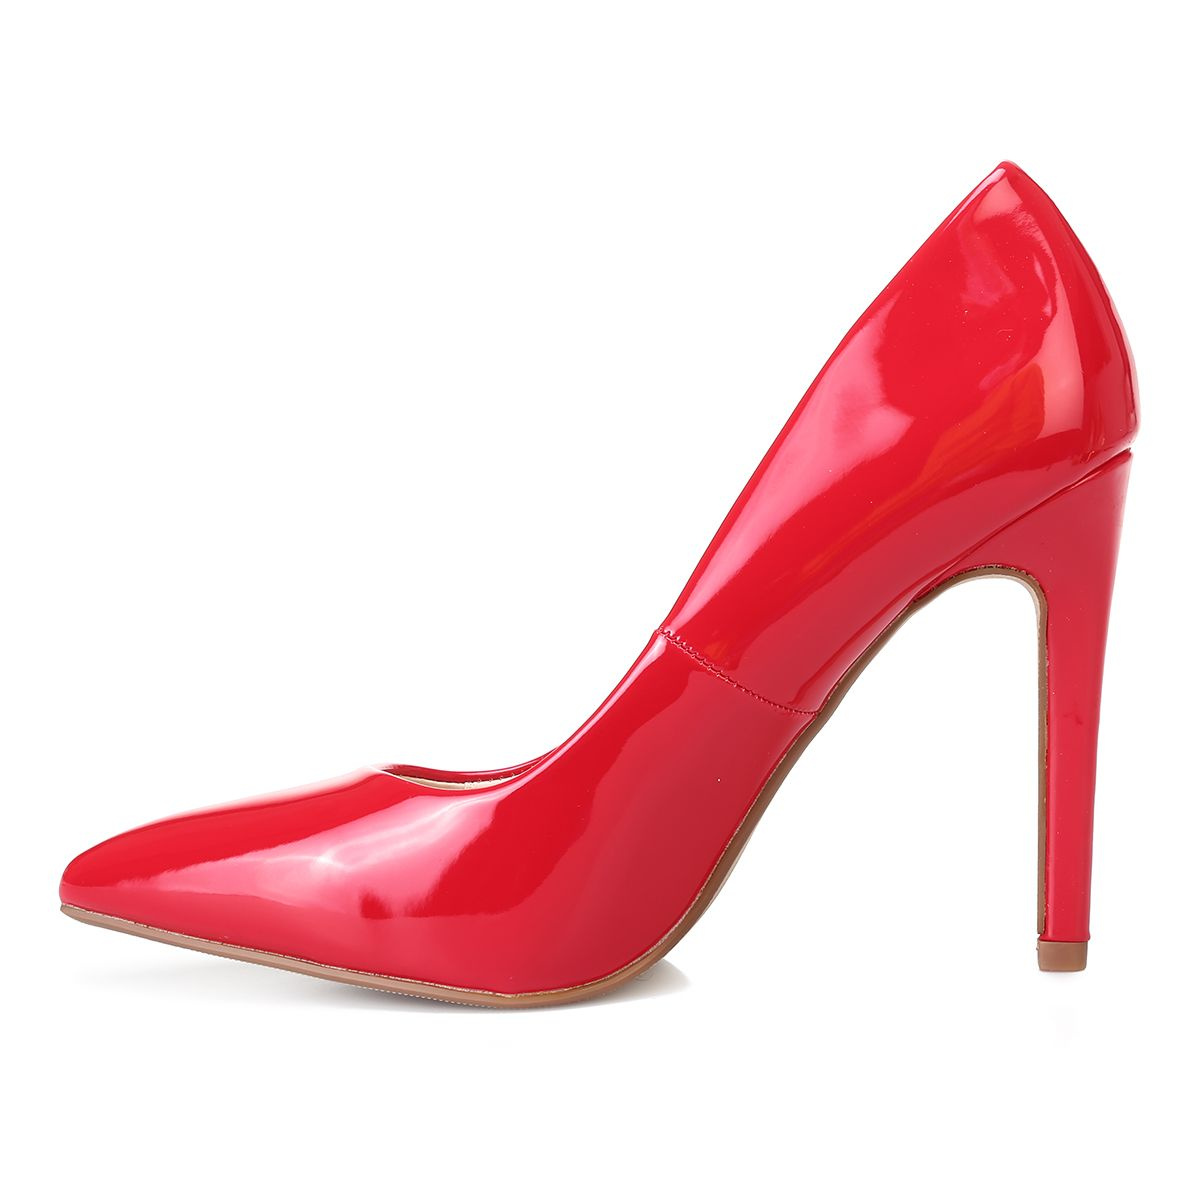 Stilettos rouges vernis